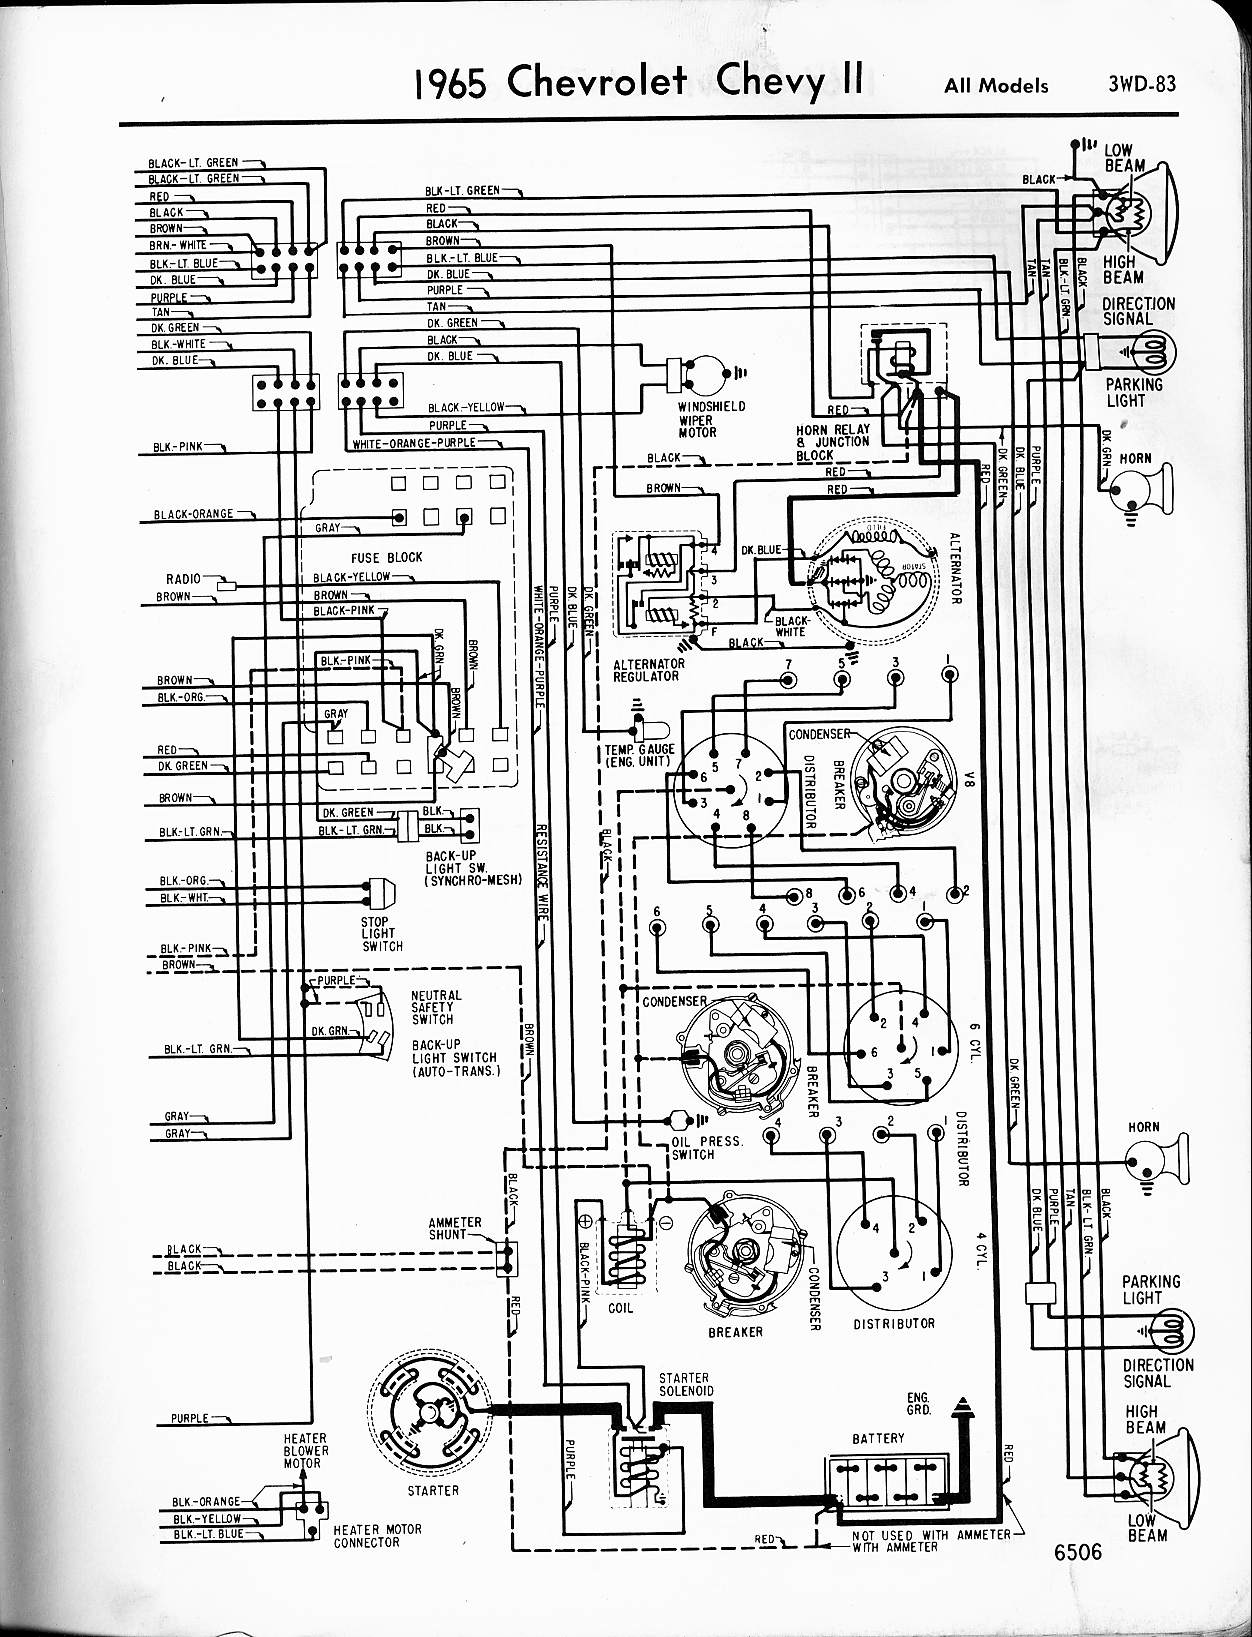 MWireChev65_3WD 083 chevy diagrams 1965 chevy truck wiring harness at alyssarenee.co